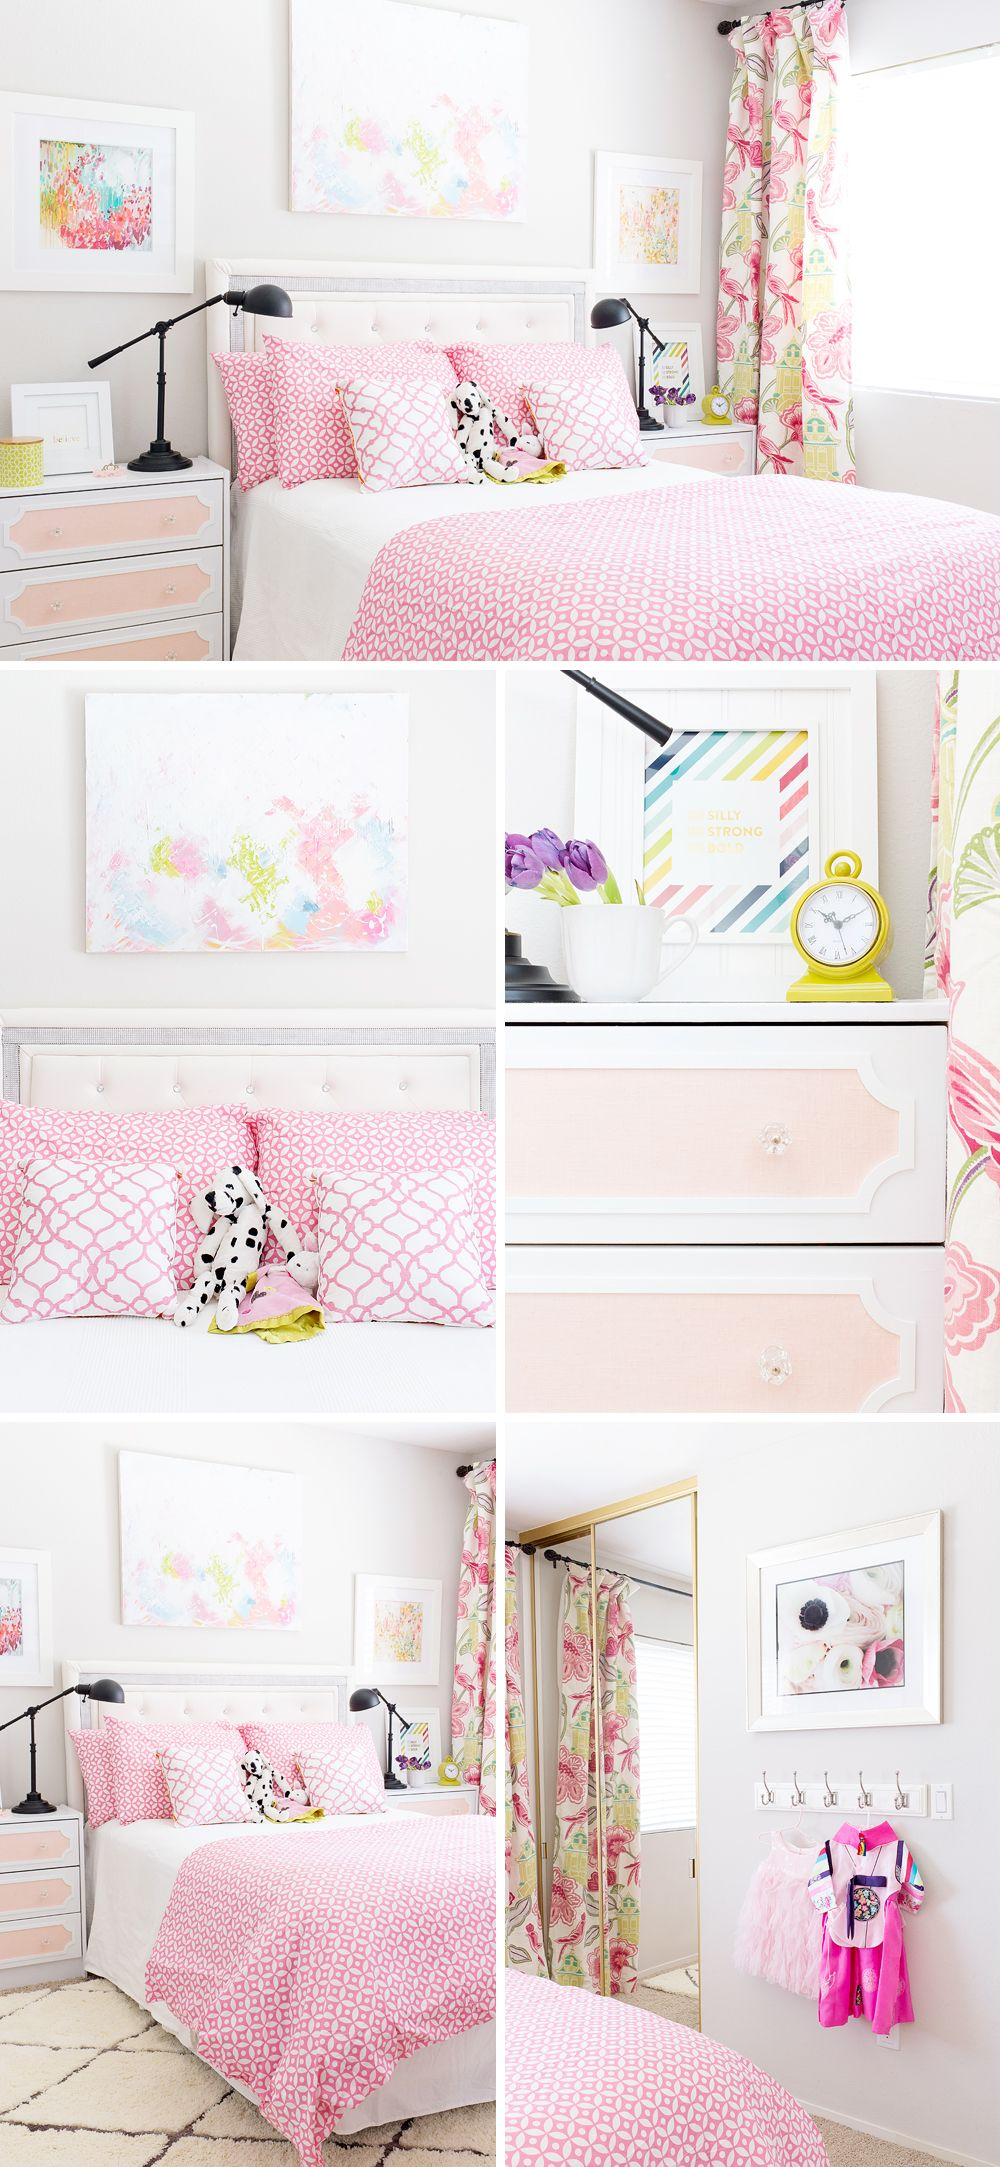 curtains curtain fabric ideas pink wall theme girly bedroom sheet and for create of room bed lovely kids striped wooden connected by beige painting girls nuance on